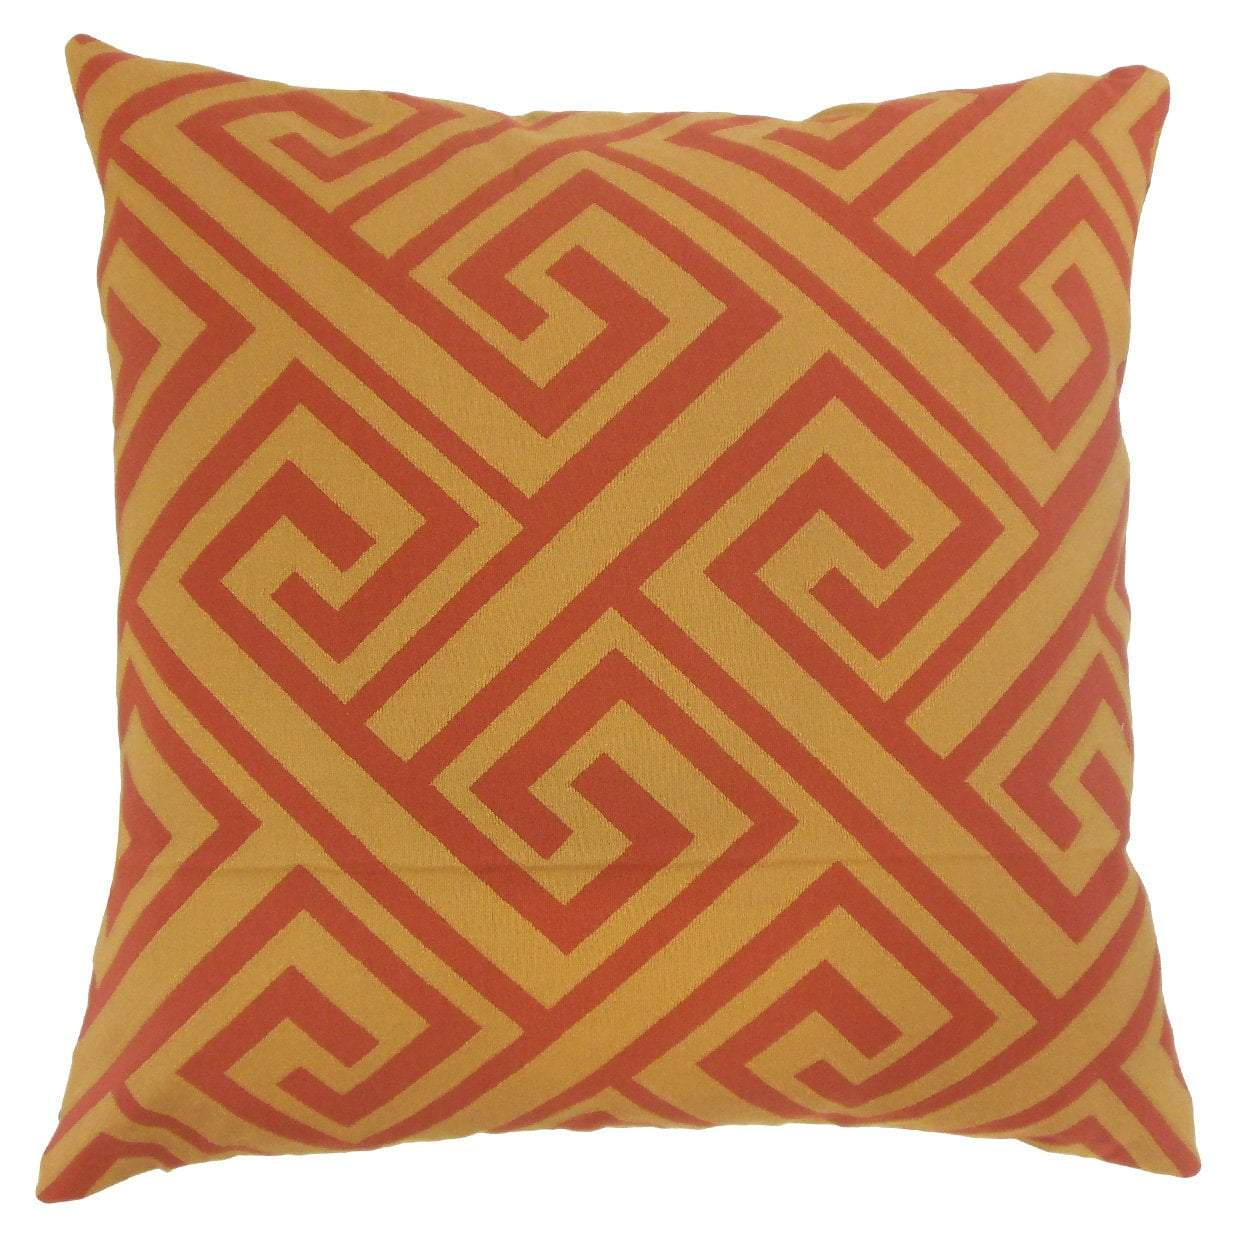 Orange Synthetic Geometric Contemporary Throw Pillow Cover